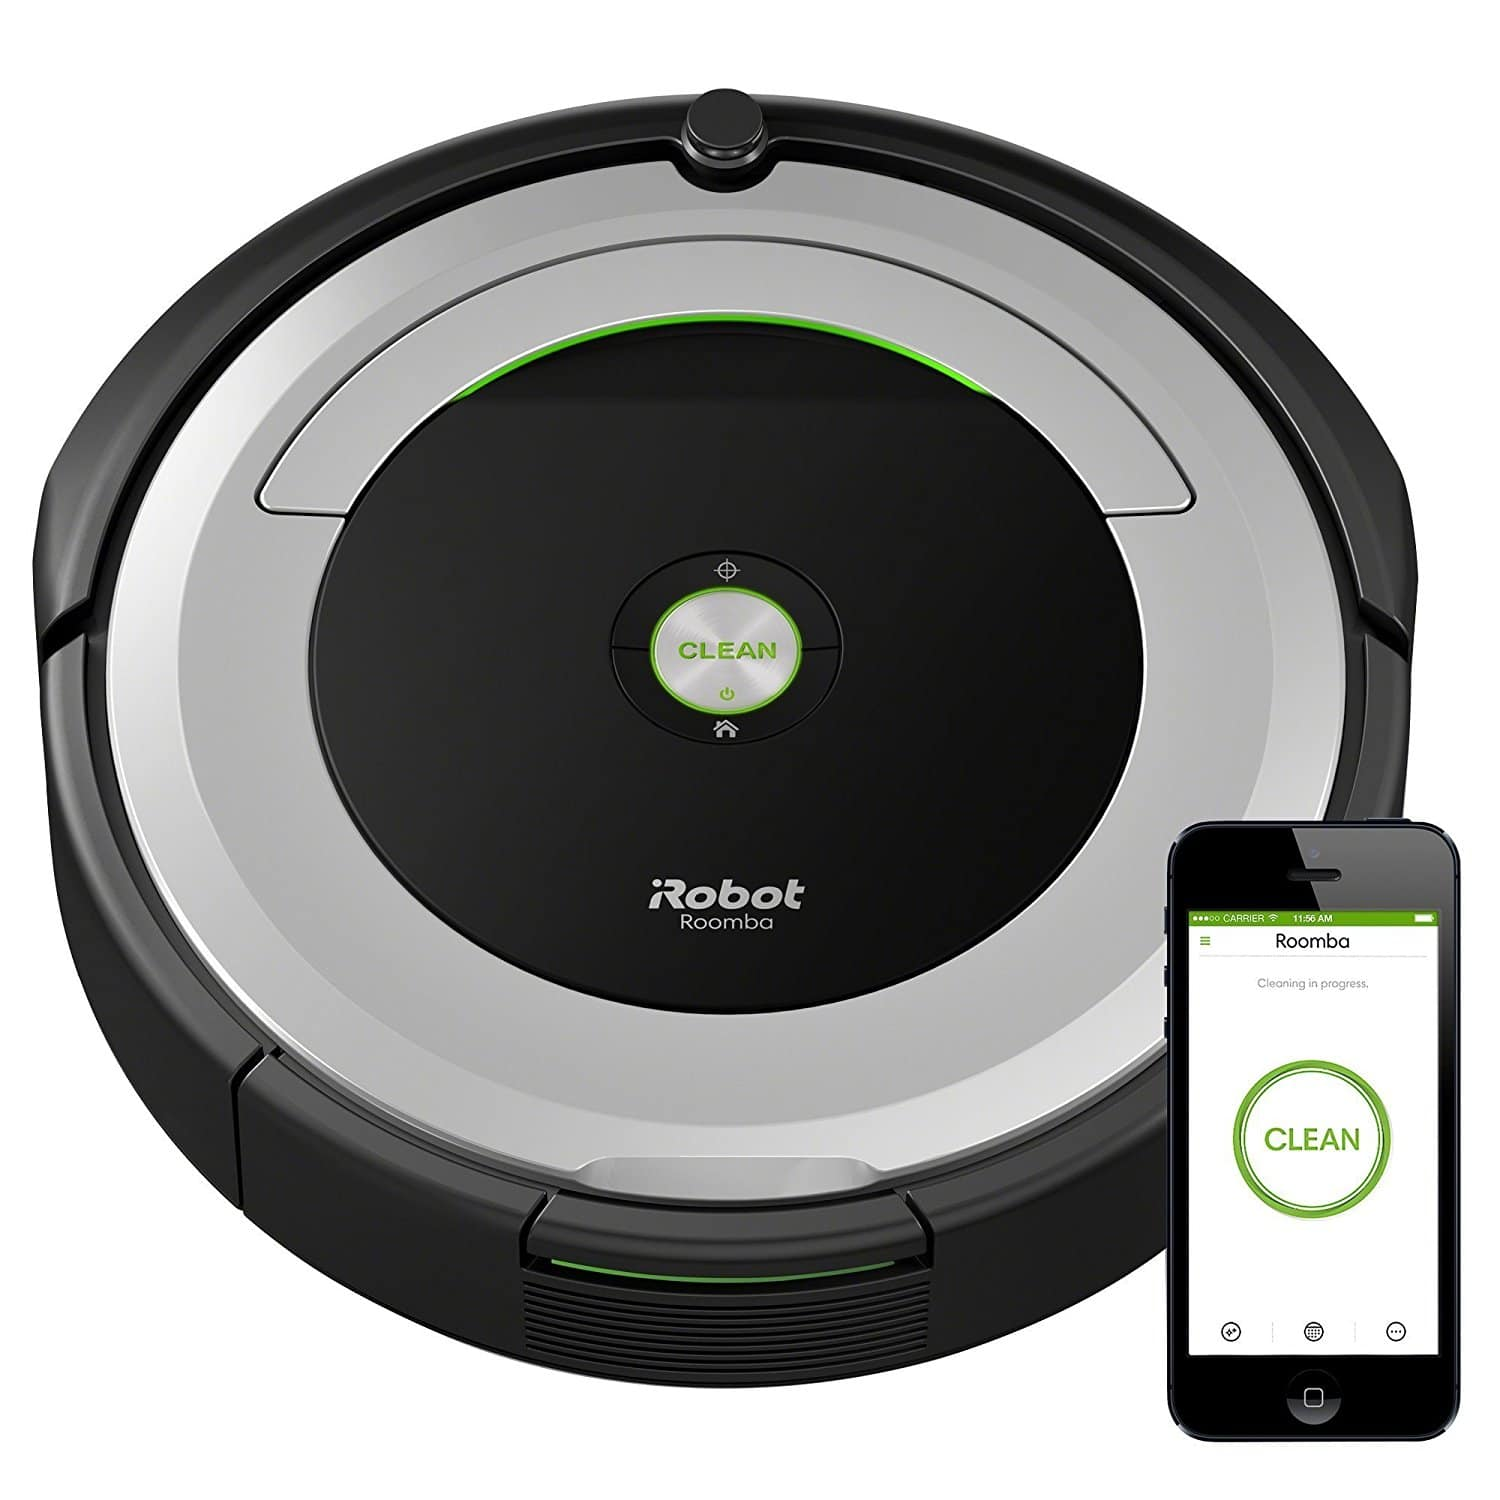 Roomba Robot Floor Vaccum gift guide idea